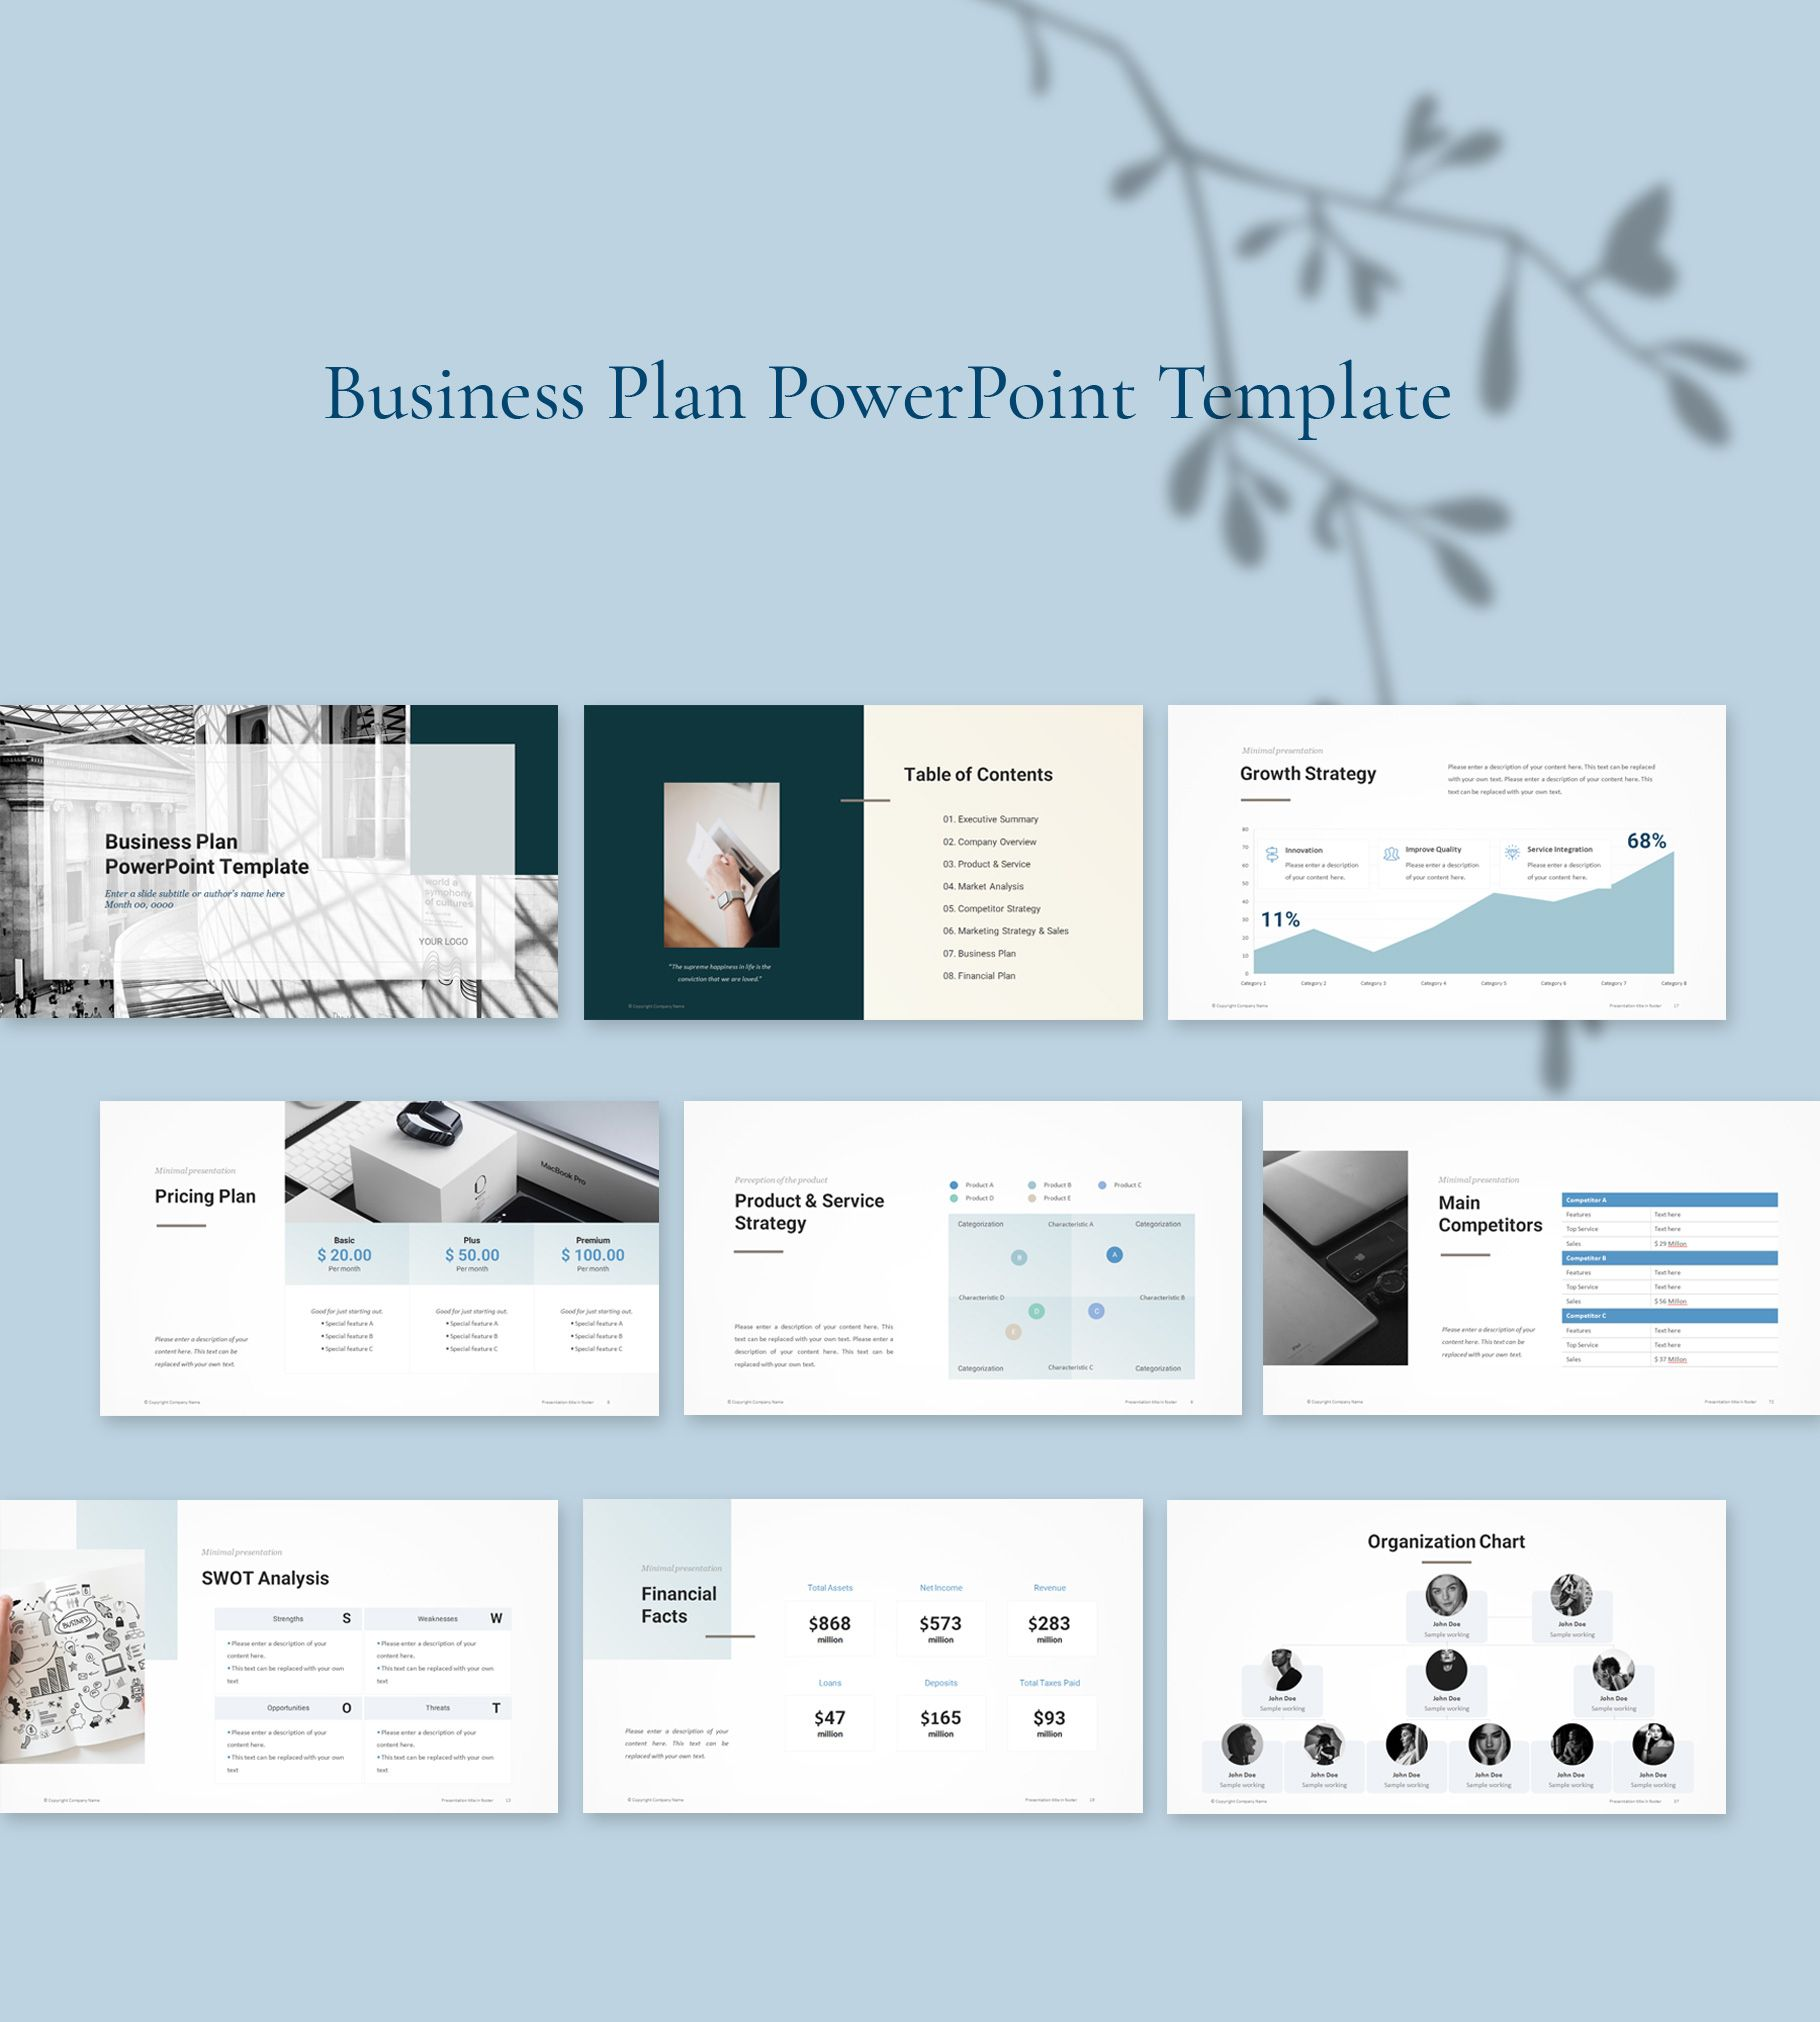 Business Plan Powerpoint Template 2019 Simple Powerpoint Template Business Presentation Templates Powerpoint Templates Business Planning